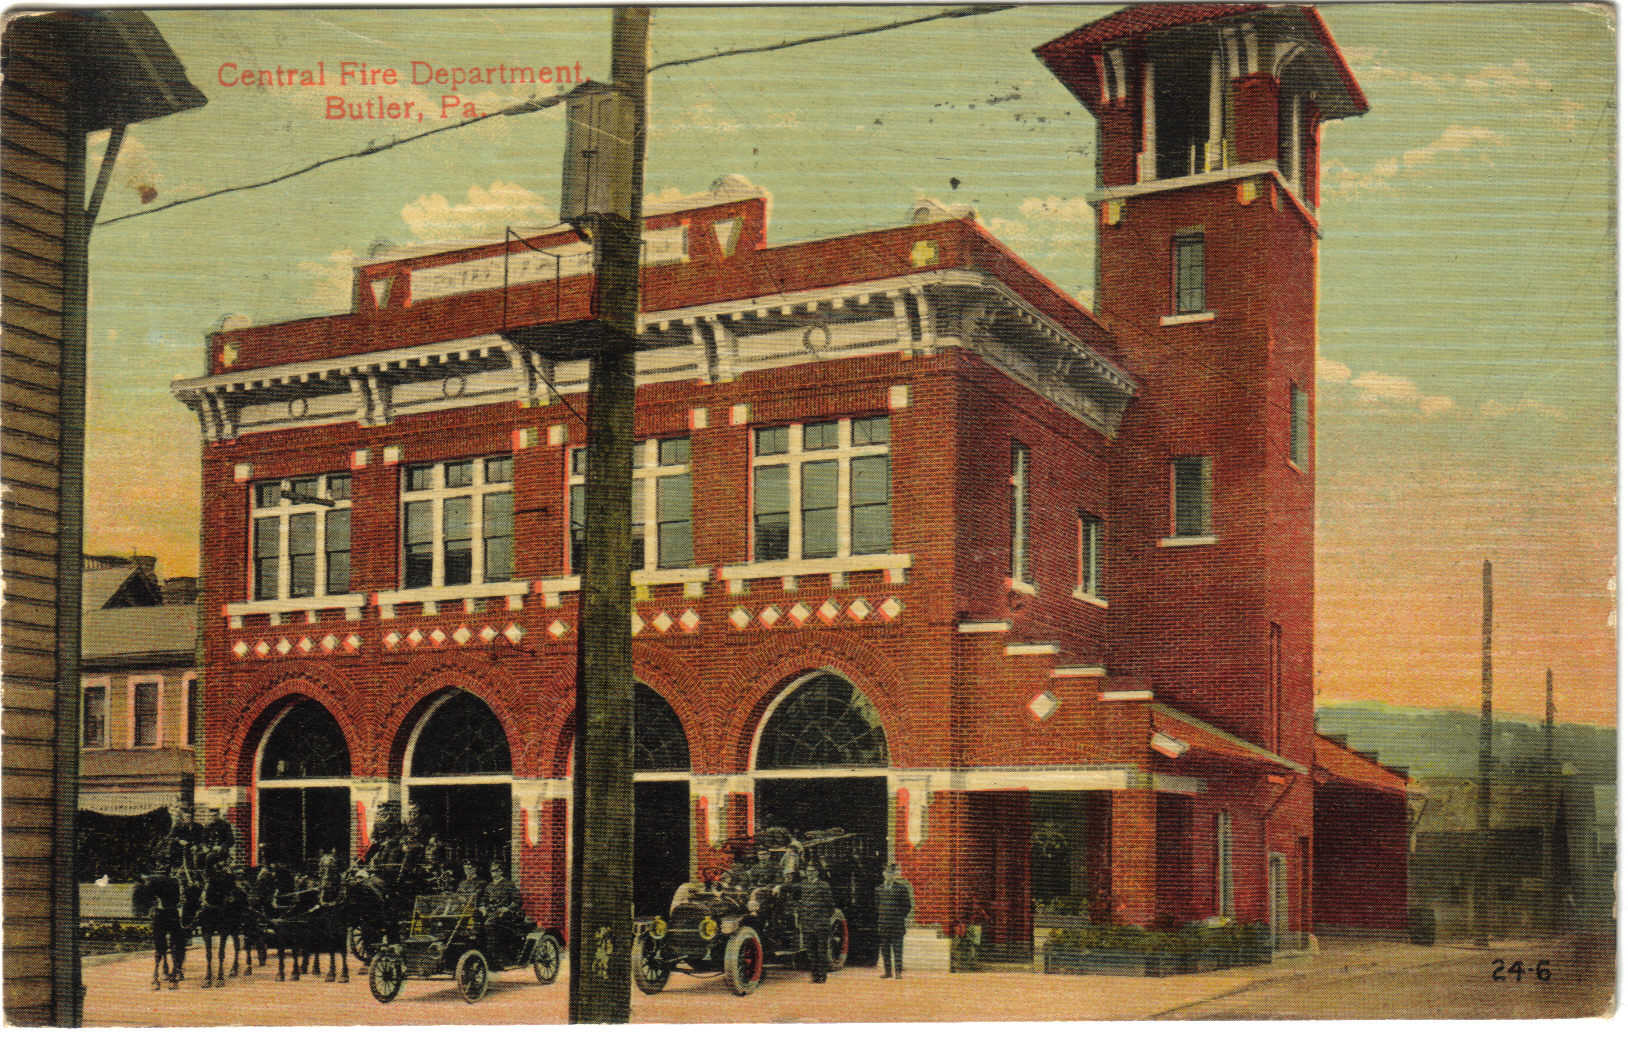 CentralFireDepartment-front.jpg